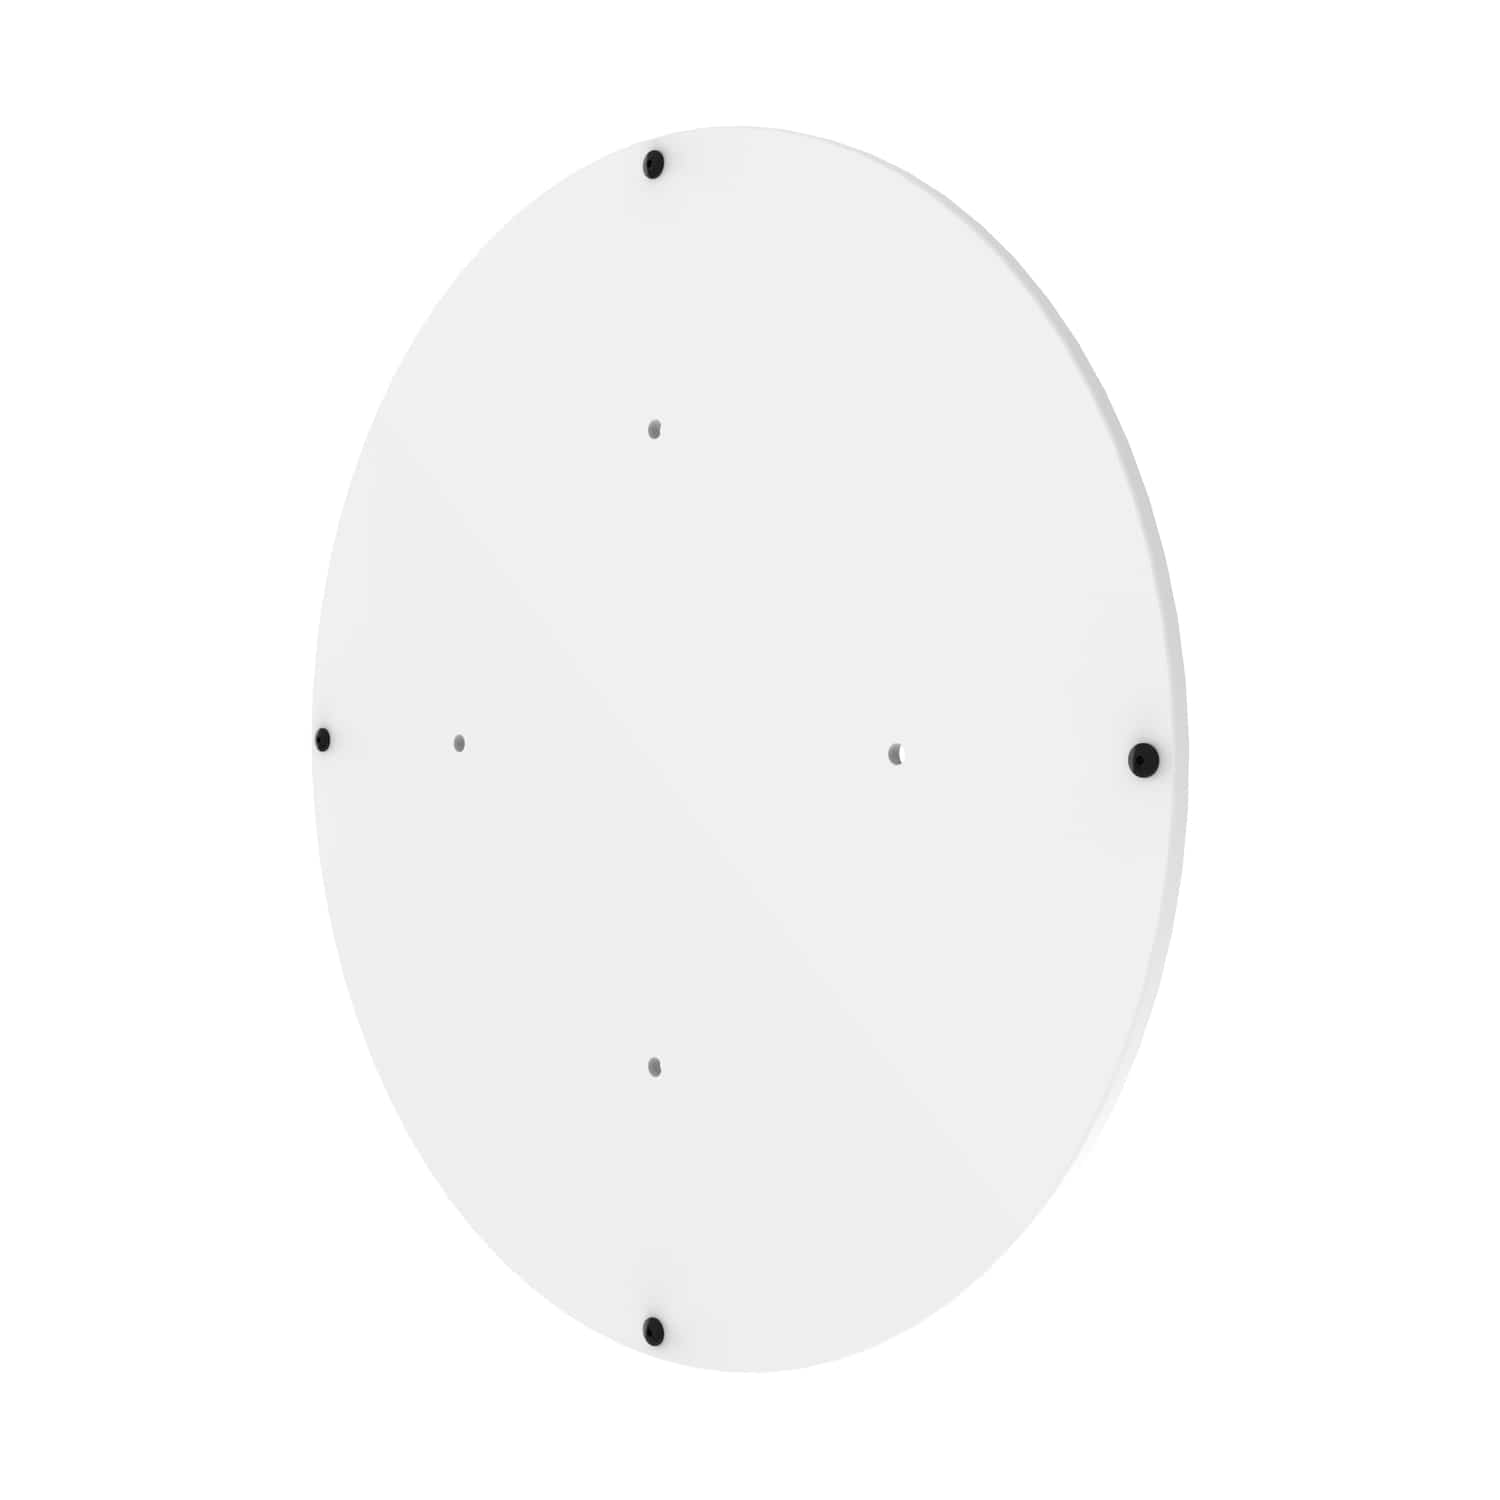 https://static.praxisdienst.com/out/pictures/generated/product/5/1500_1500_100/138226_wallplate-white-angled_web.jpg